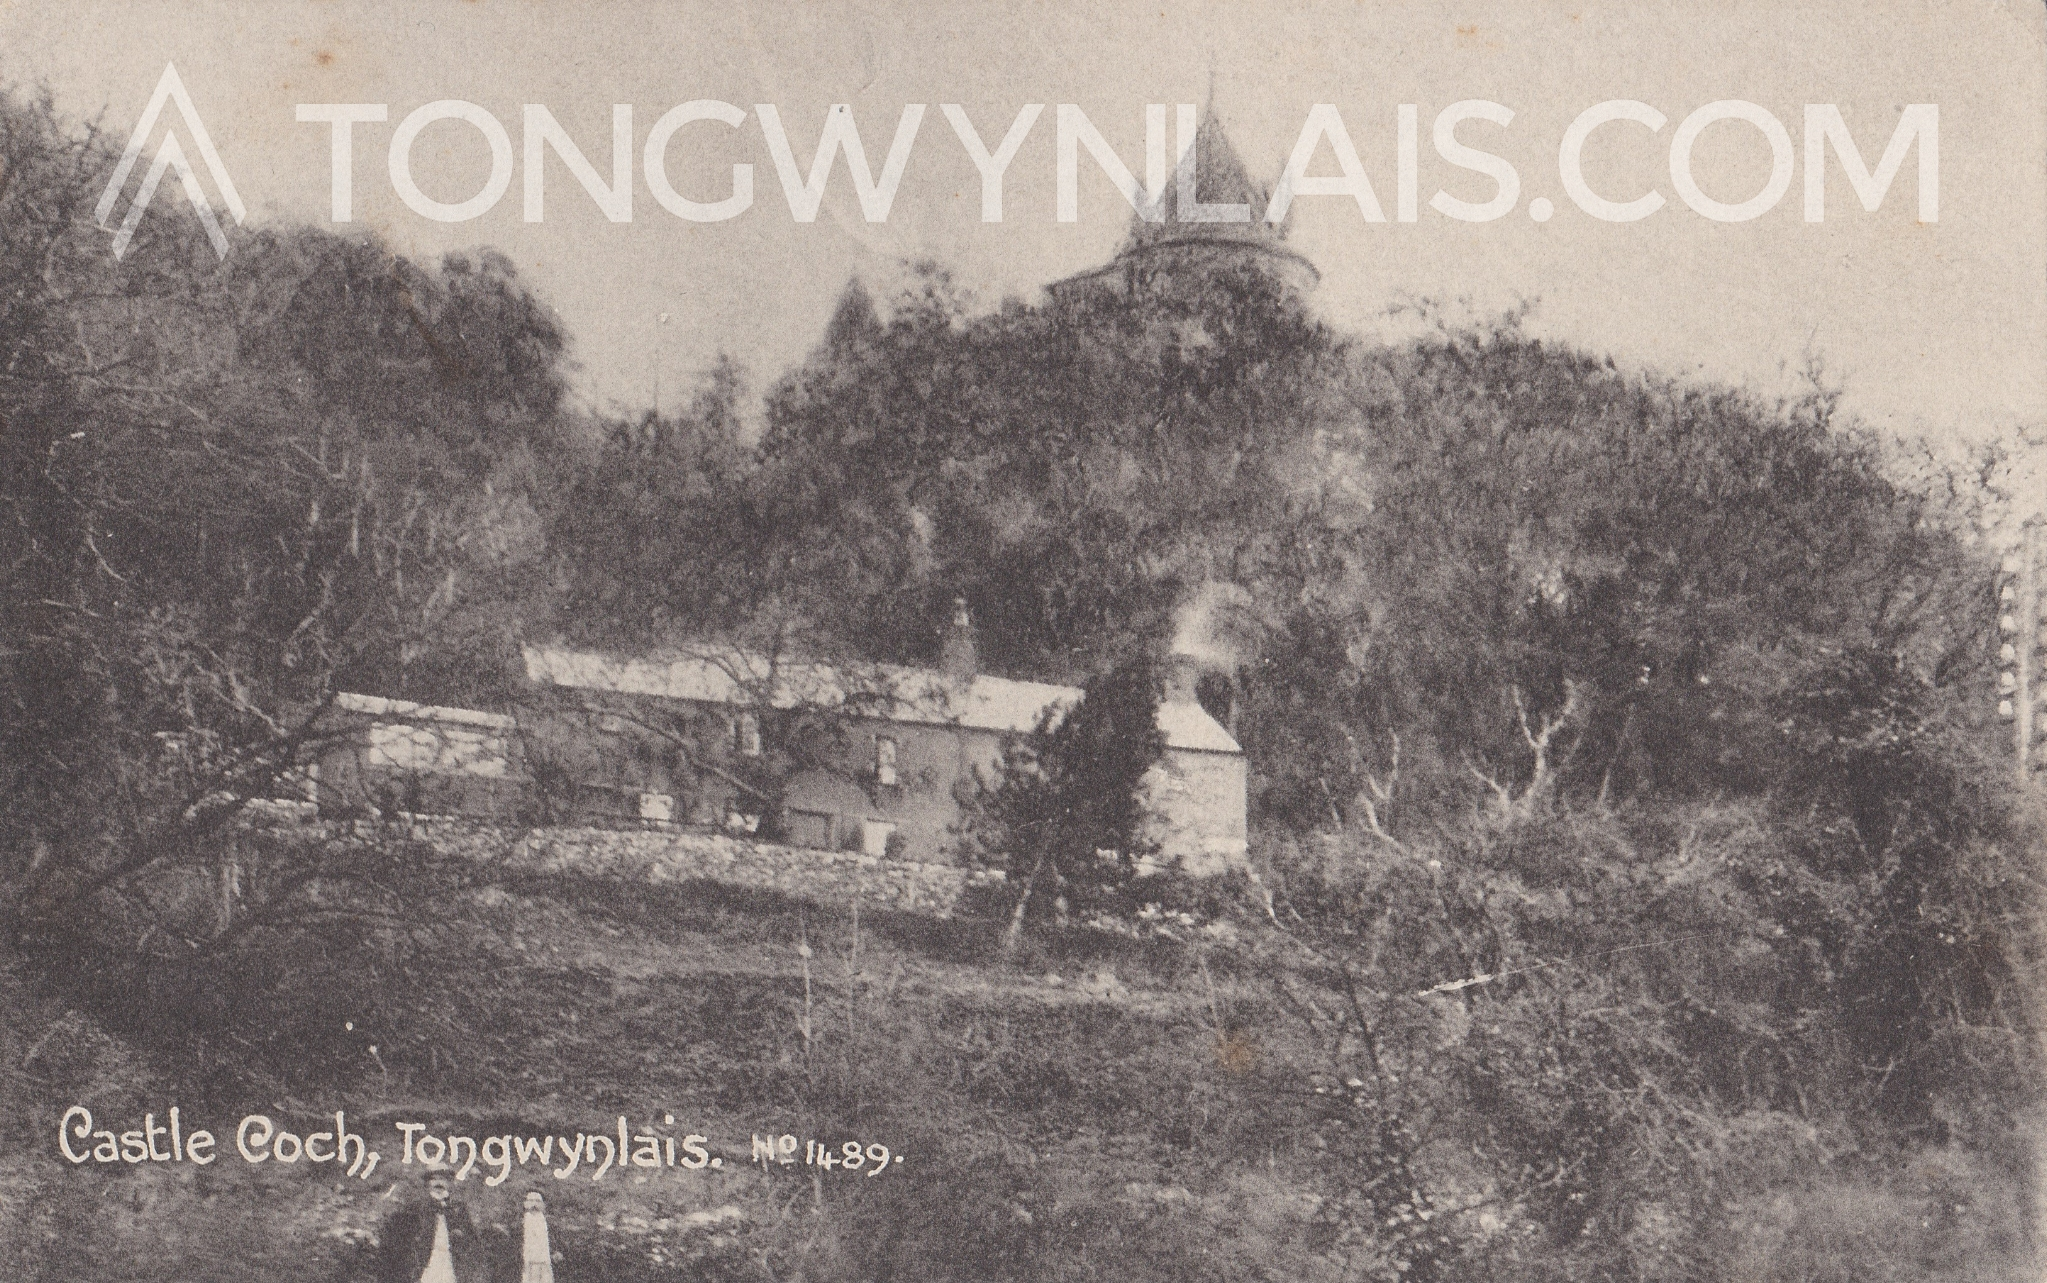 Postcard of cottages in front of Castell Coch, Tongwynlais